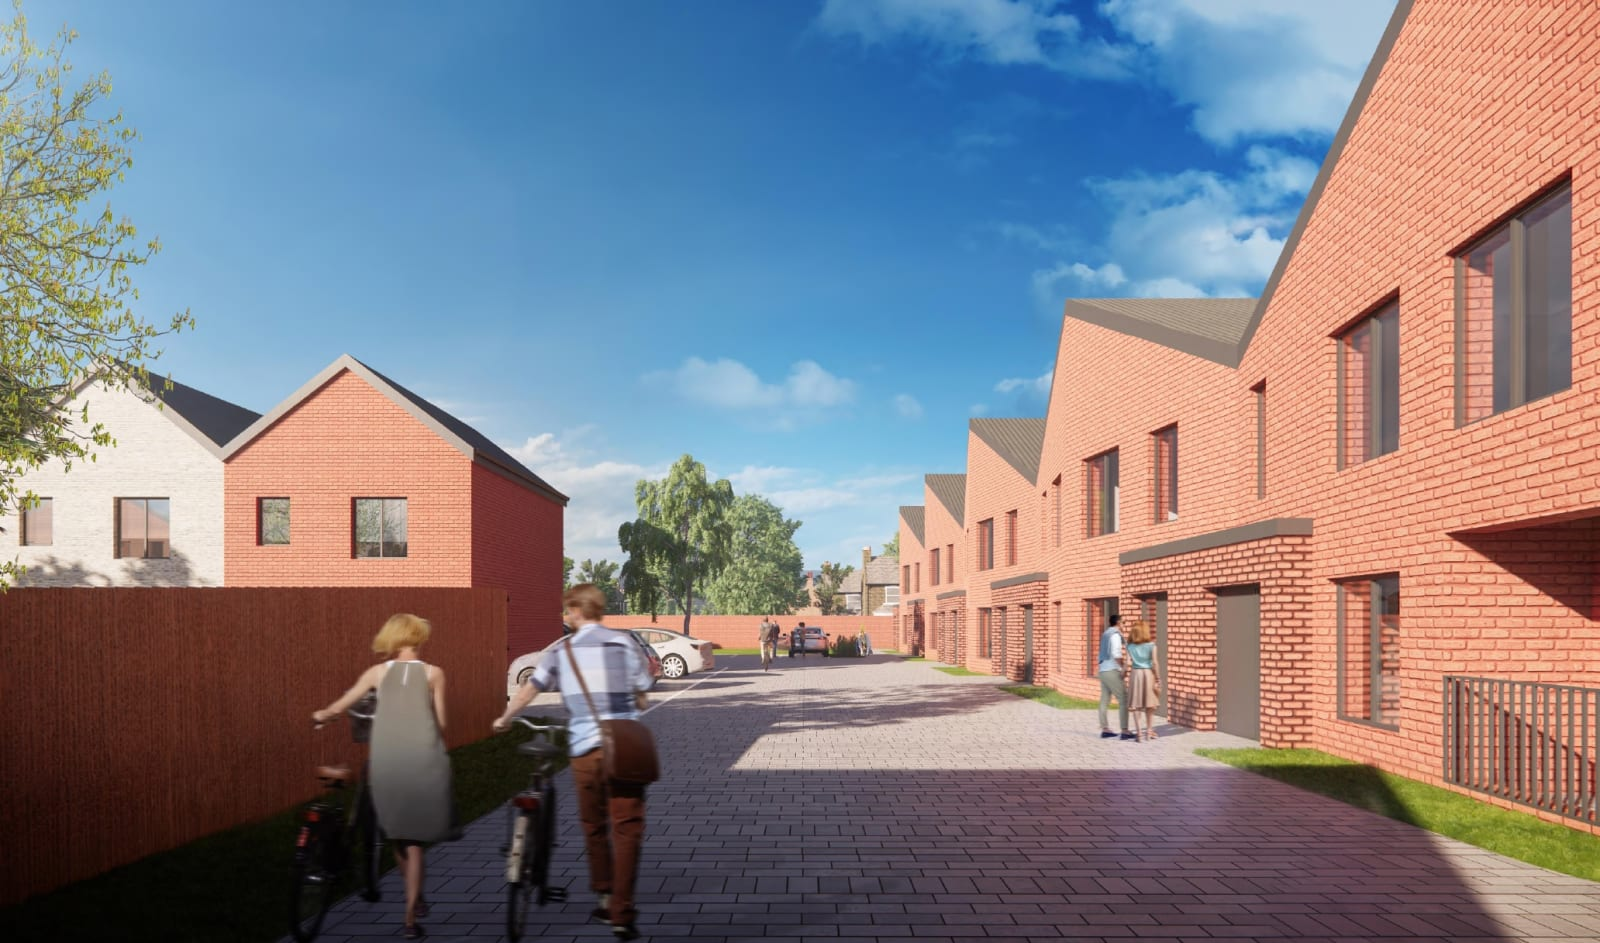 New council homes proposed on former Plumstead leisure centre site